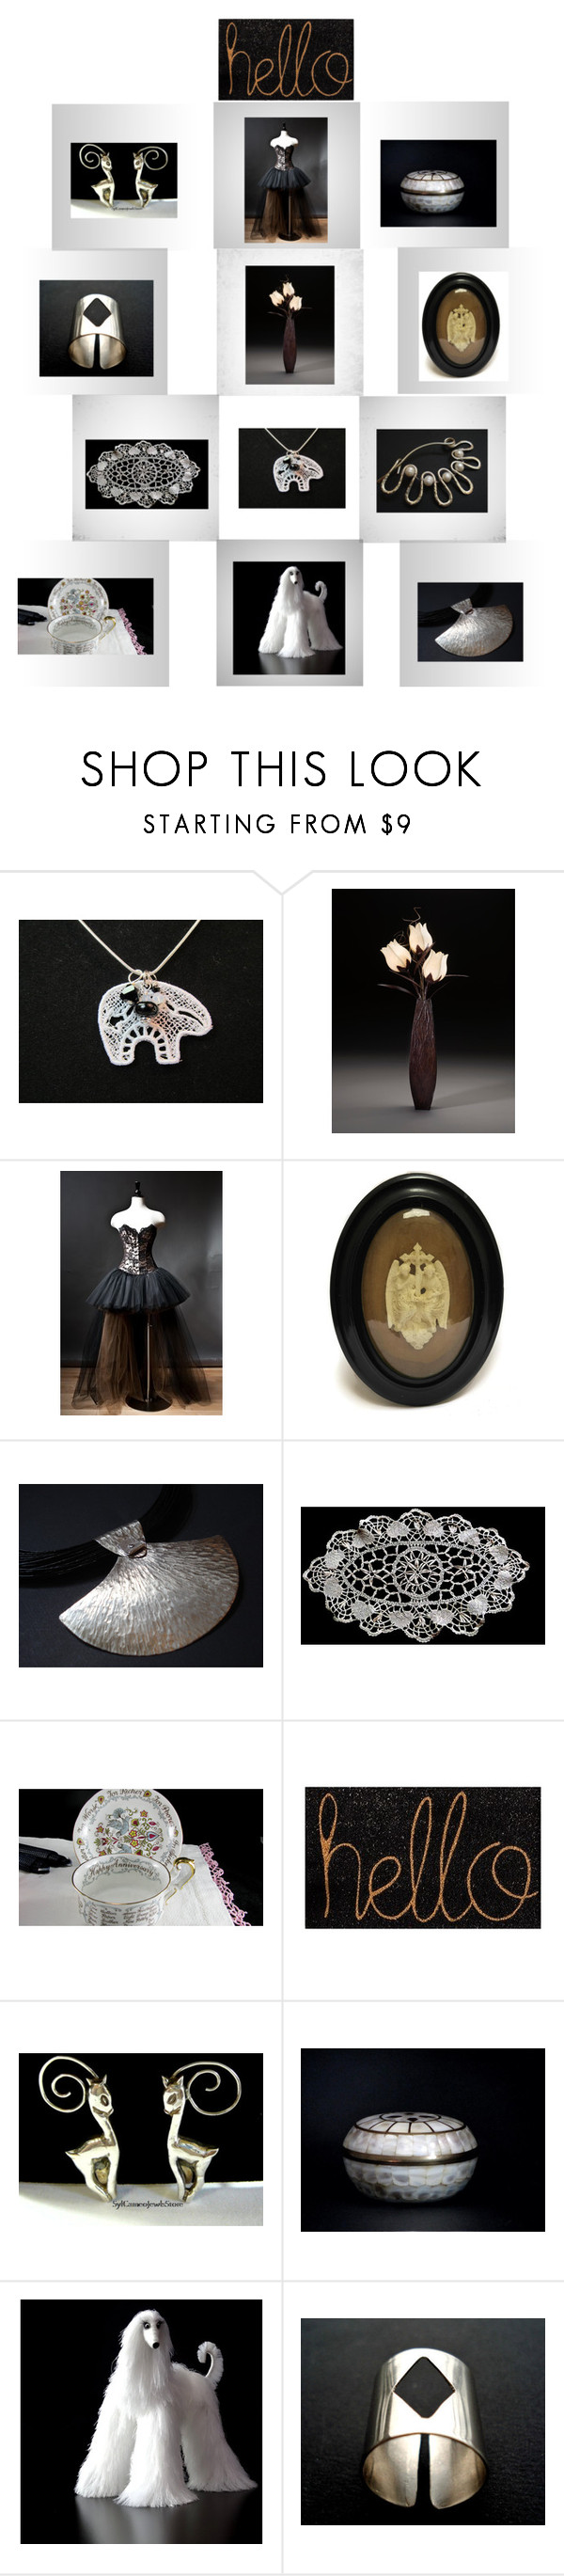 """Unique Gifts on Etsy"" by anna-recycle ❤ liked on Polyvore featuring modern, rustic and vintage"